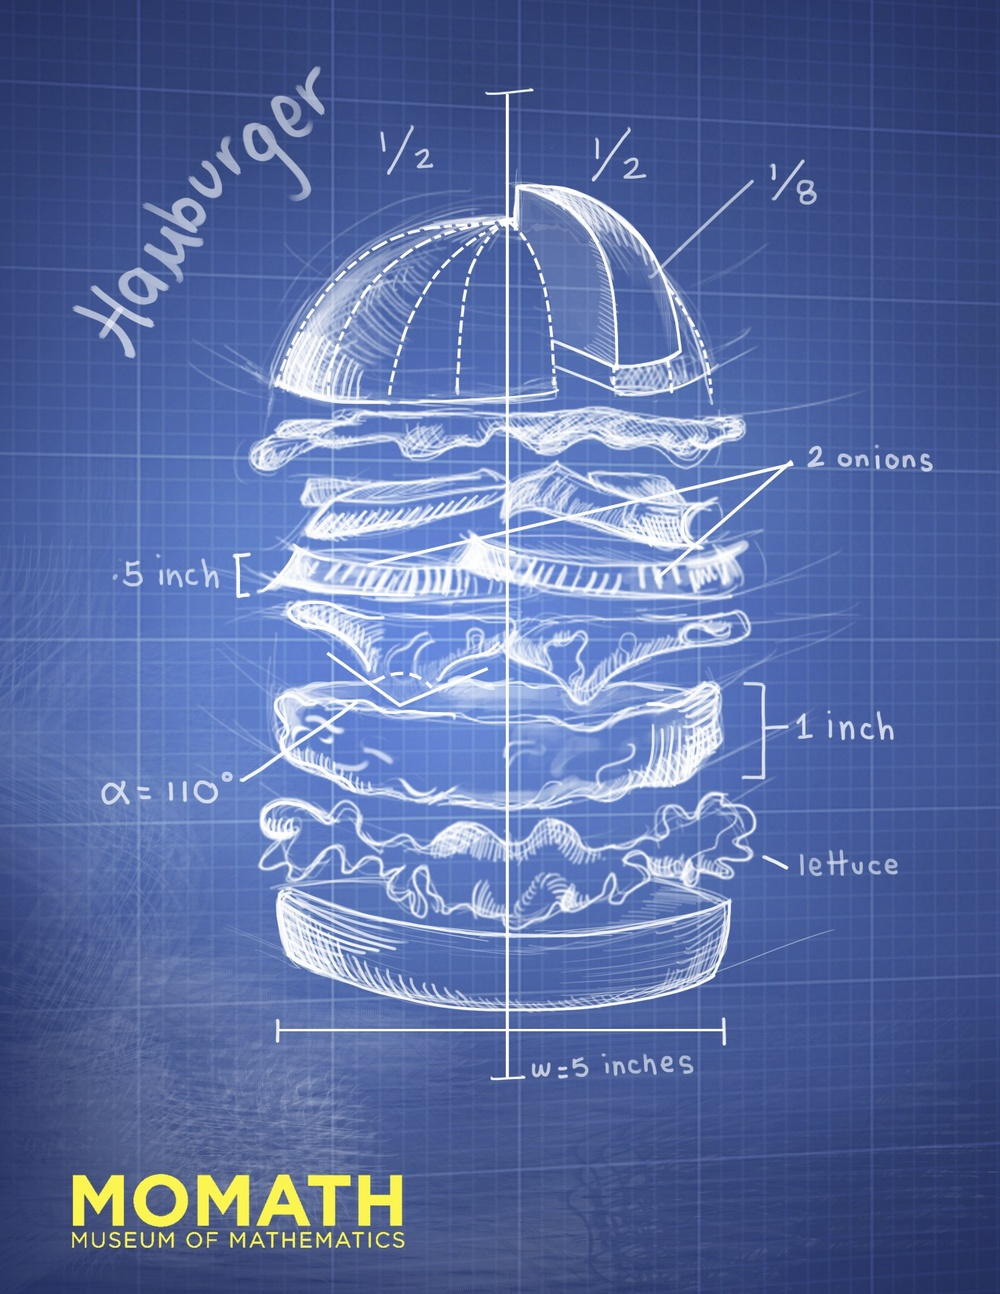 hamburgesa_blueprint.jpg